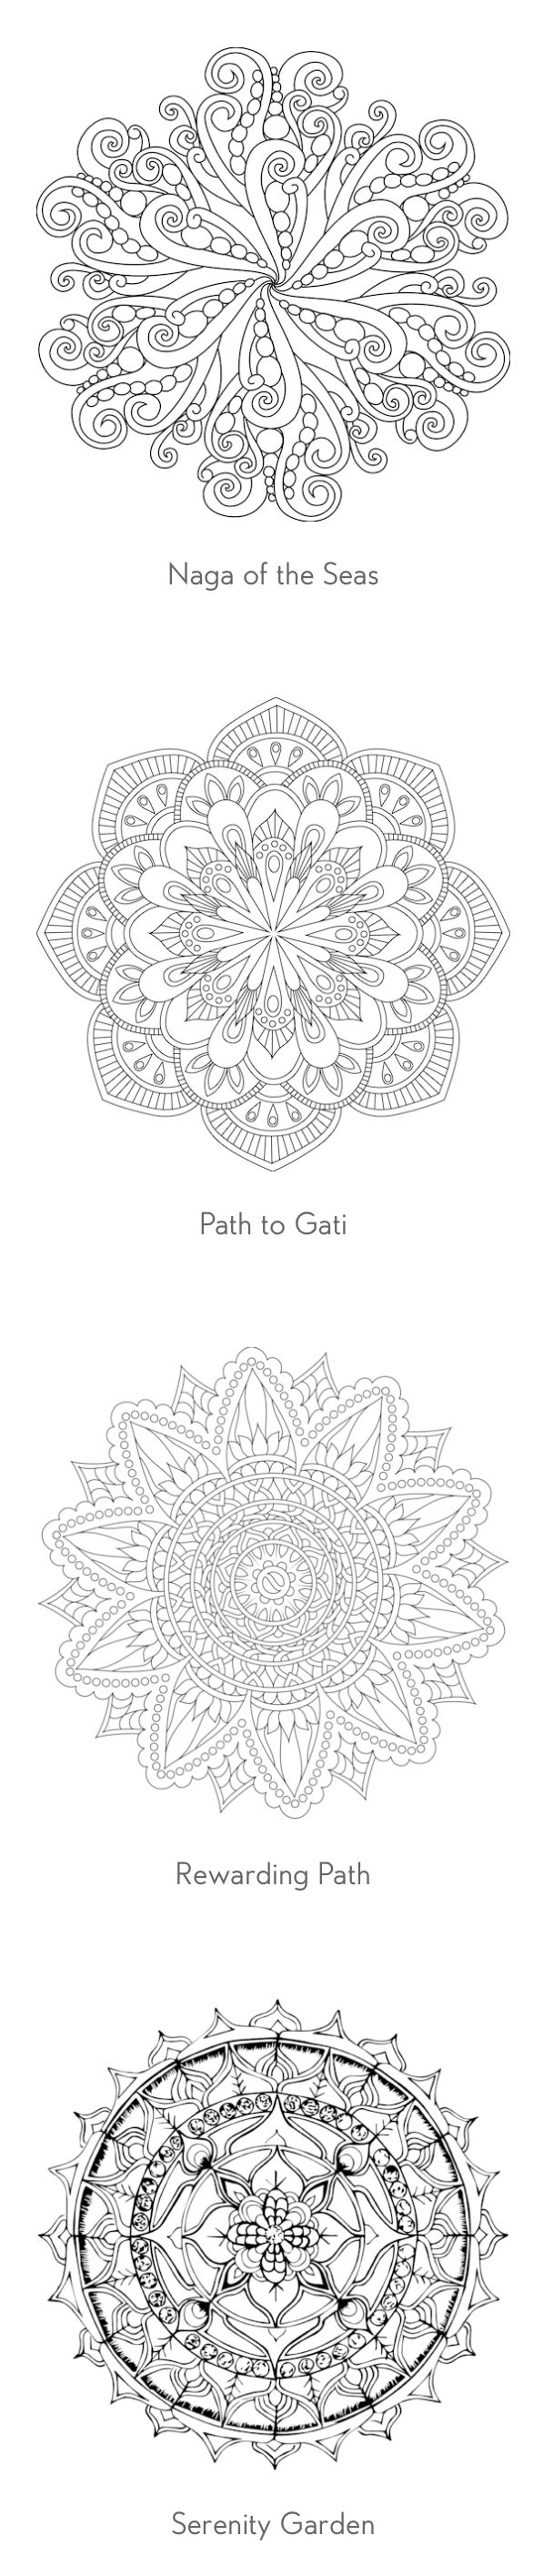 best 25 colour book ideas on pinterest coloring books